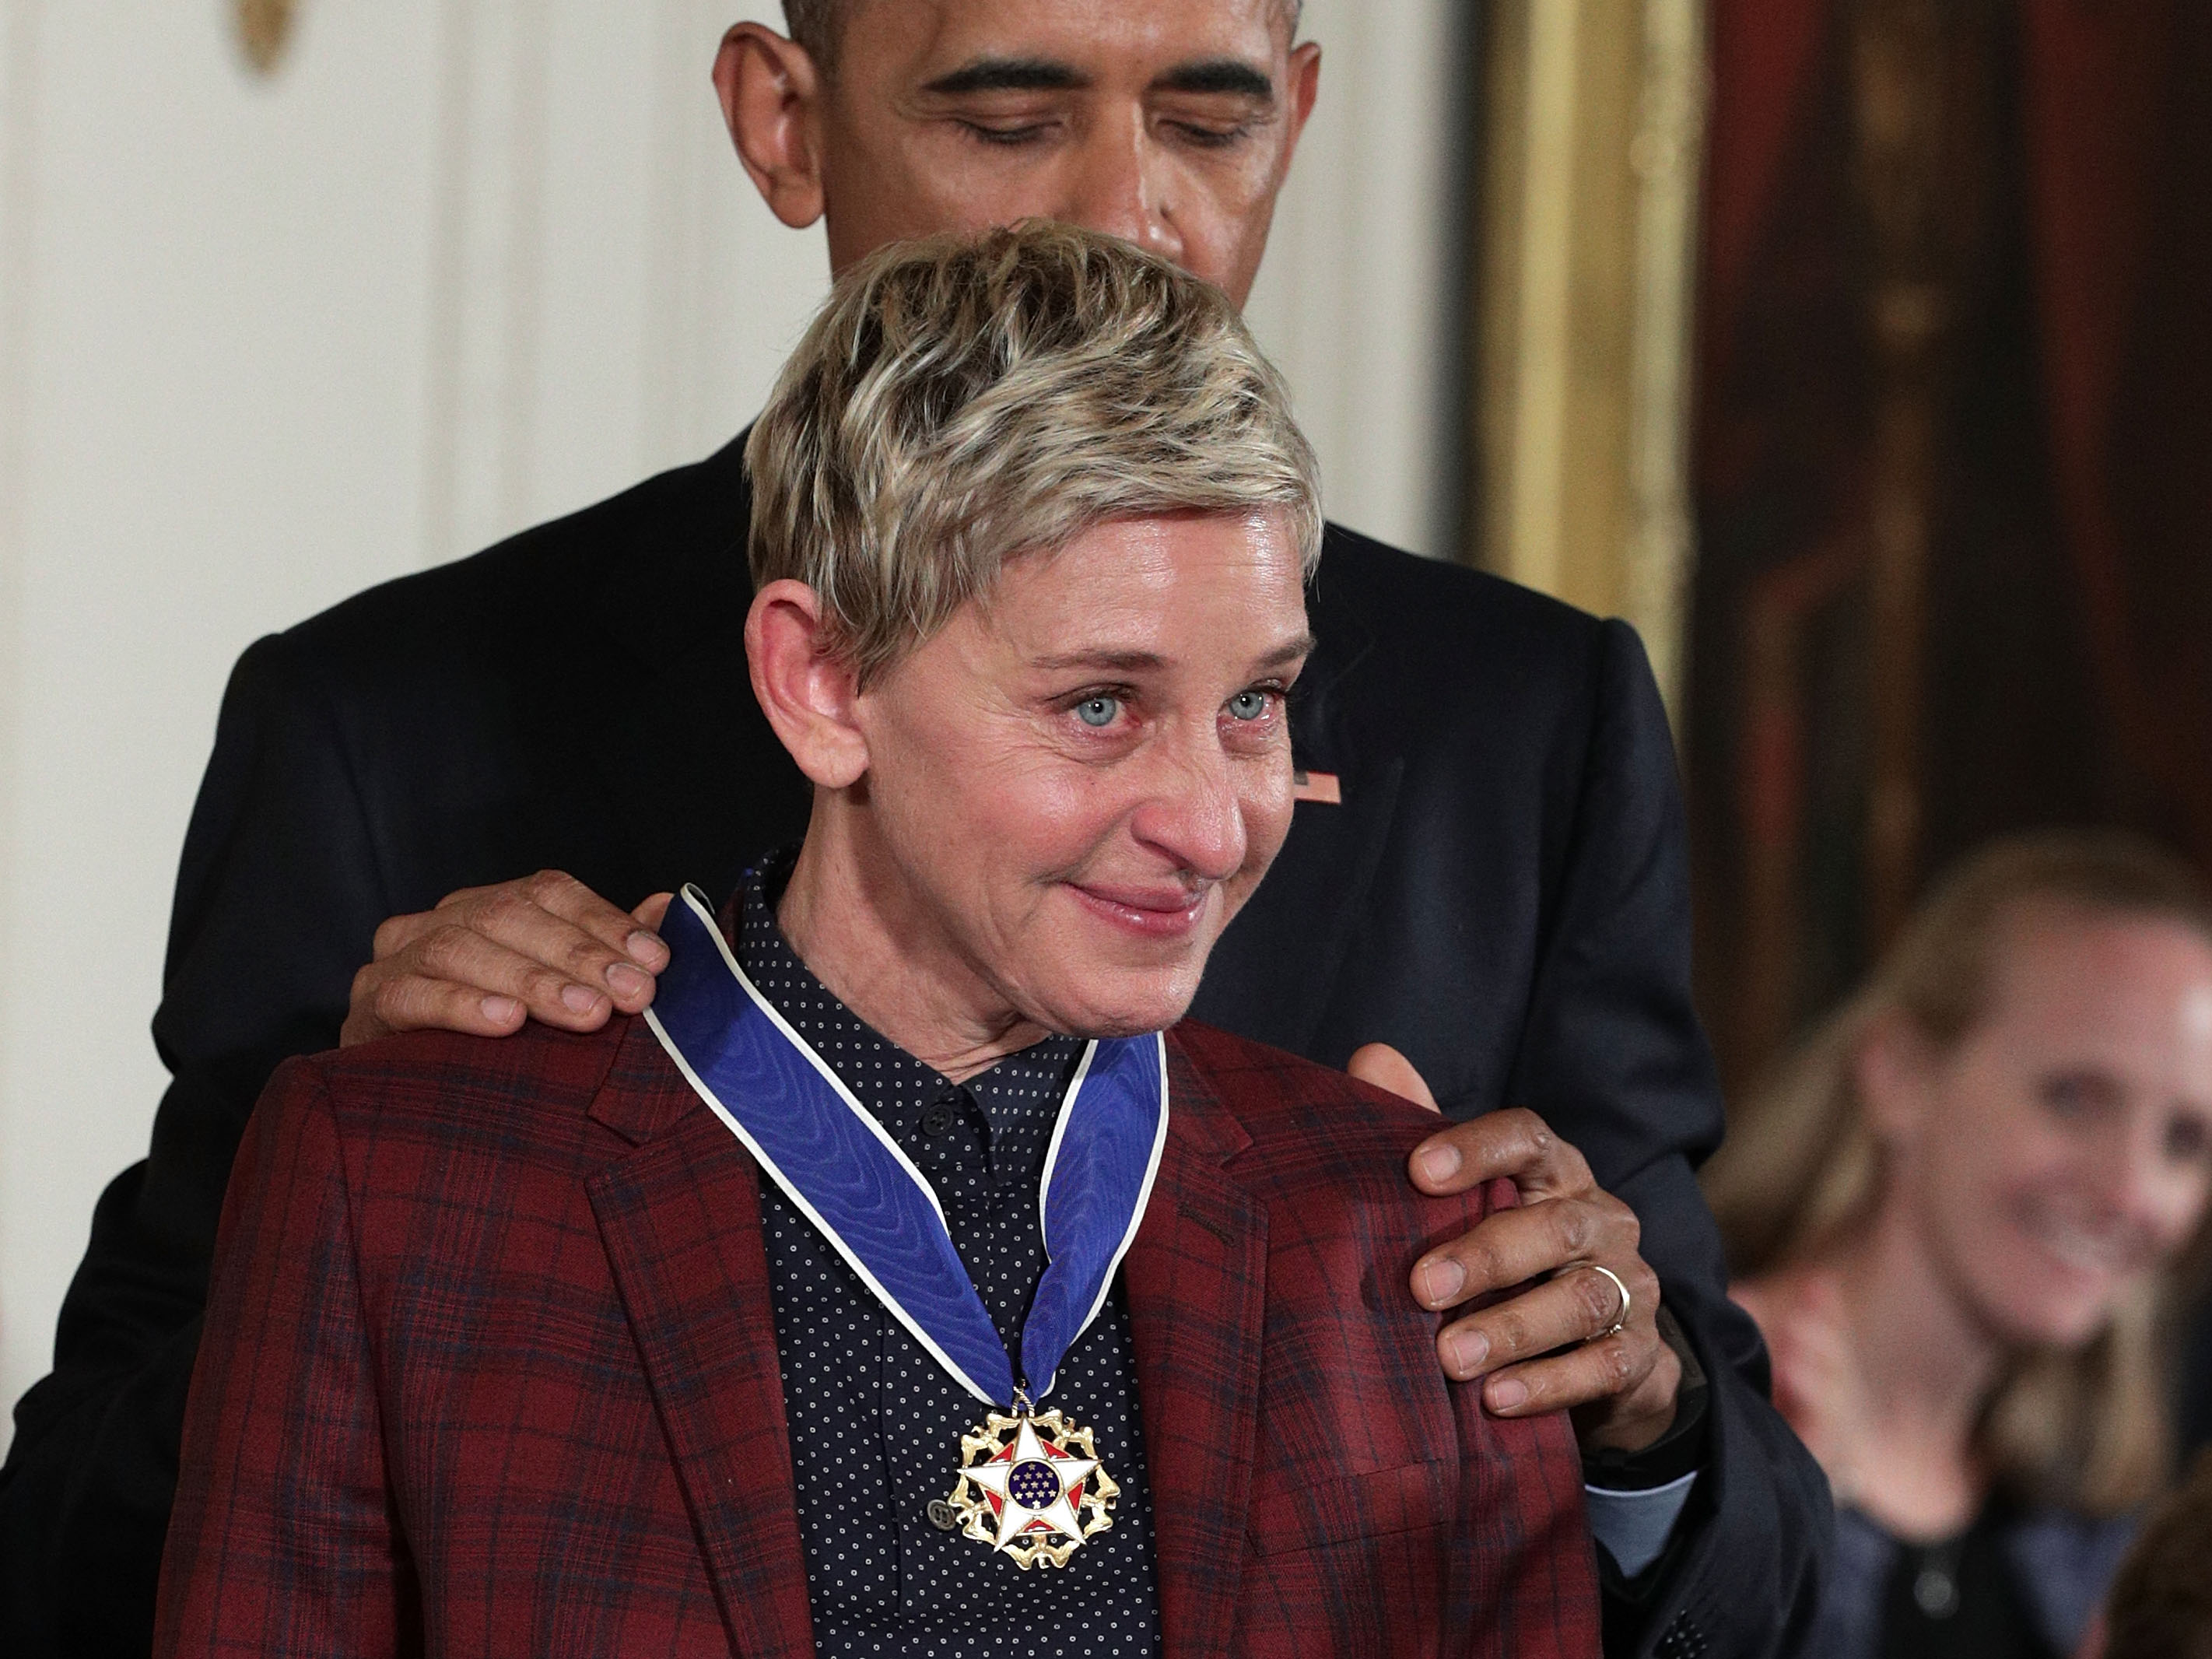 ellen-degeneres-broke-into-tears-when-she-was-awarded-the-presidential-medal-of-freedom